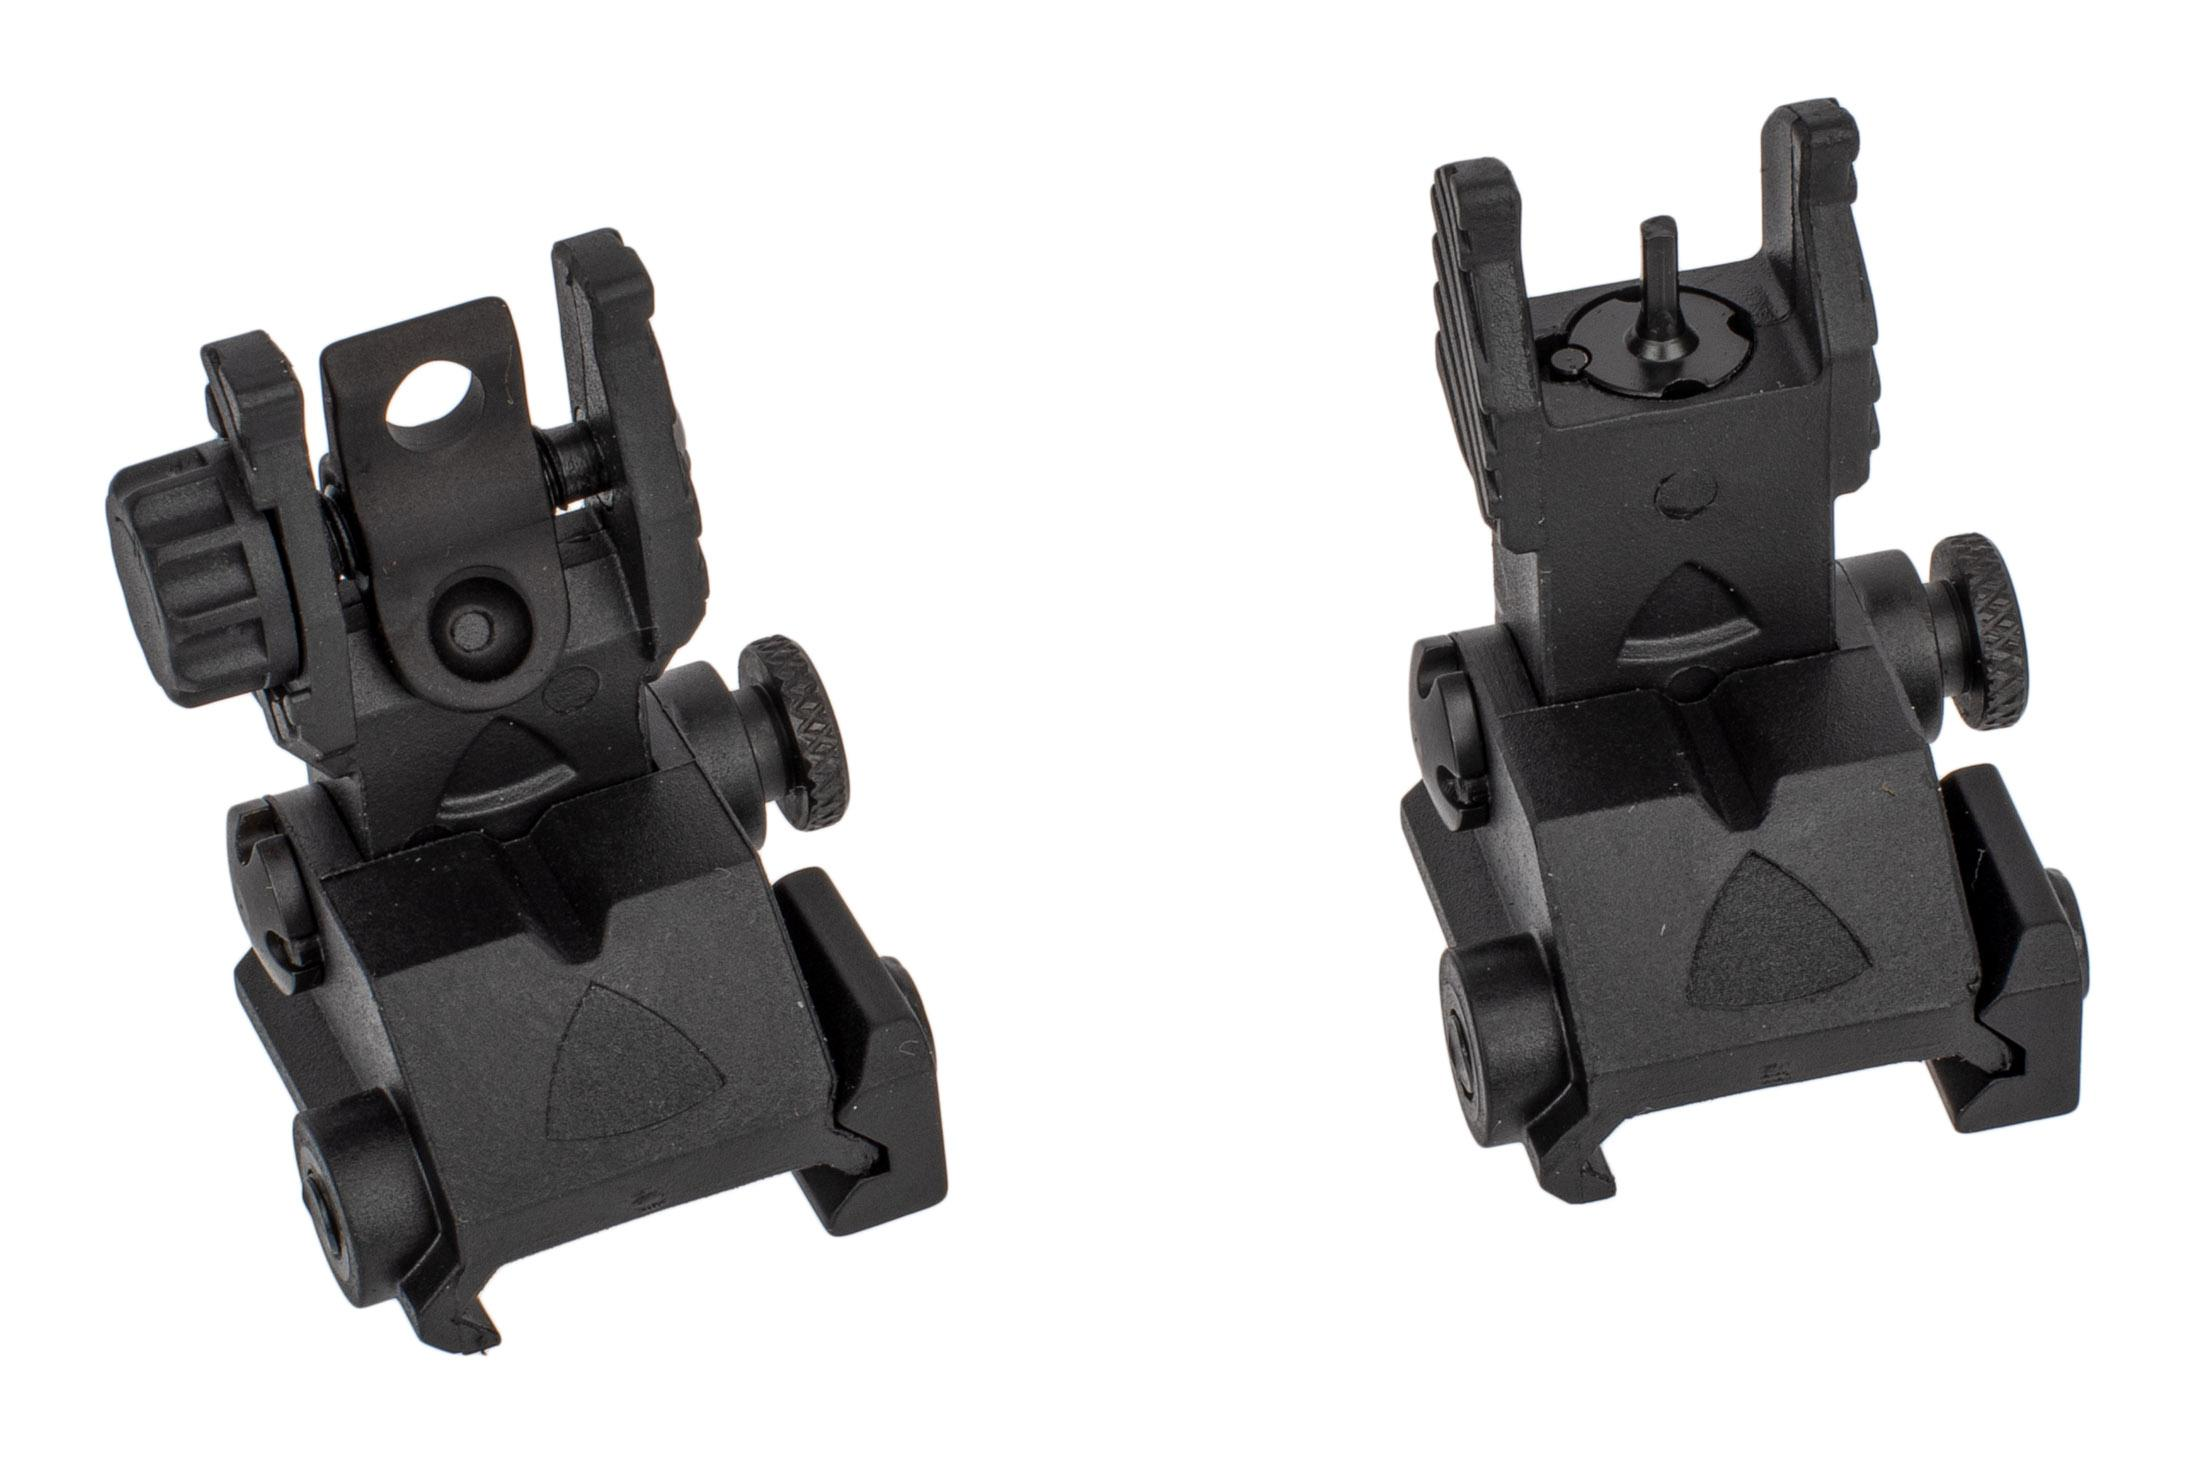 Guntec USA EZ Sights Thin Profile Folding BUIS